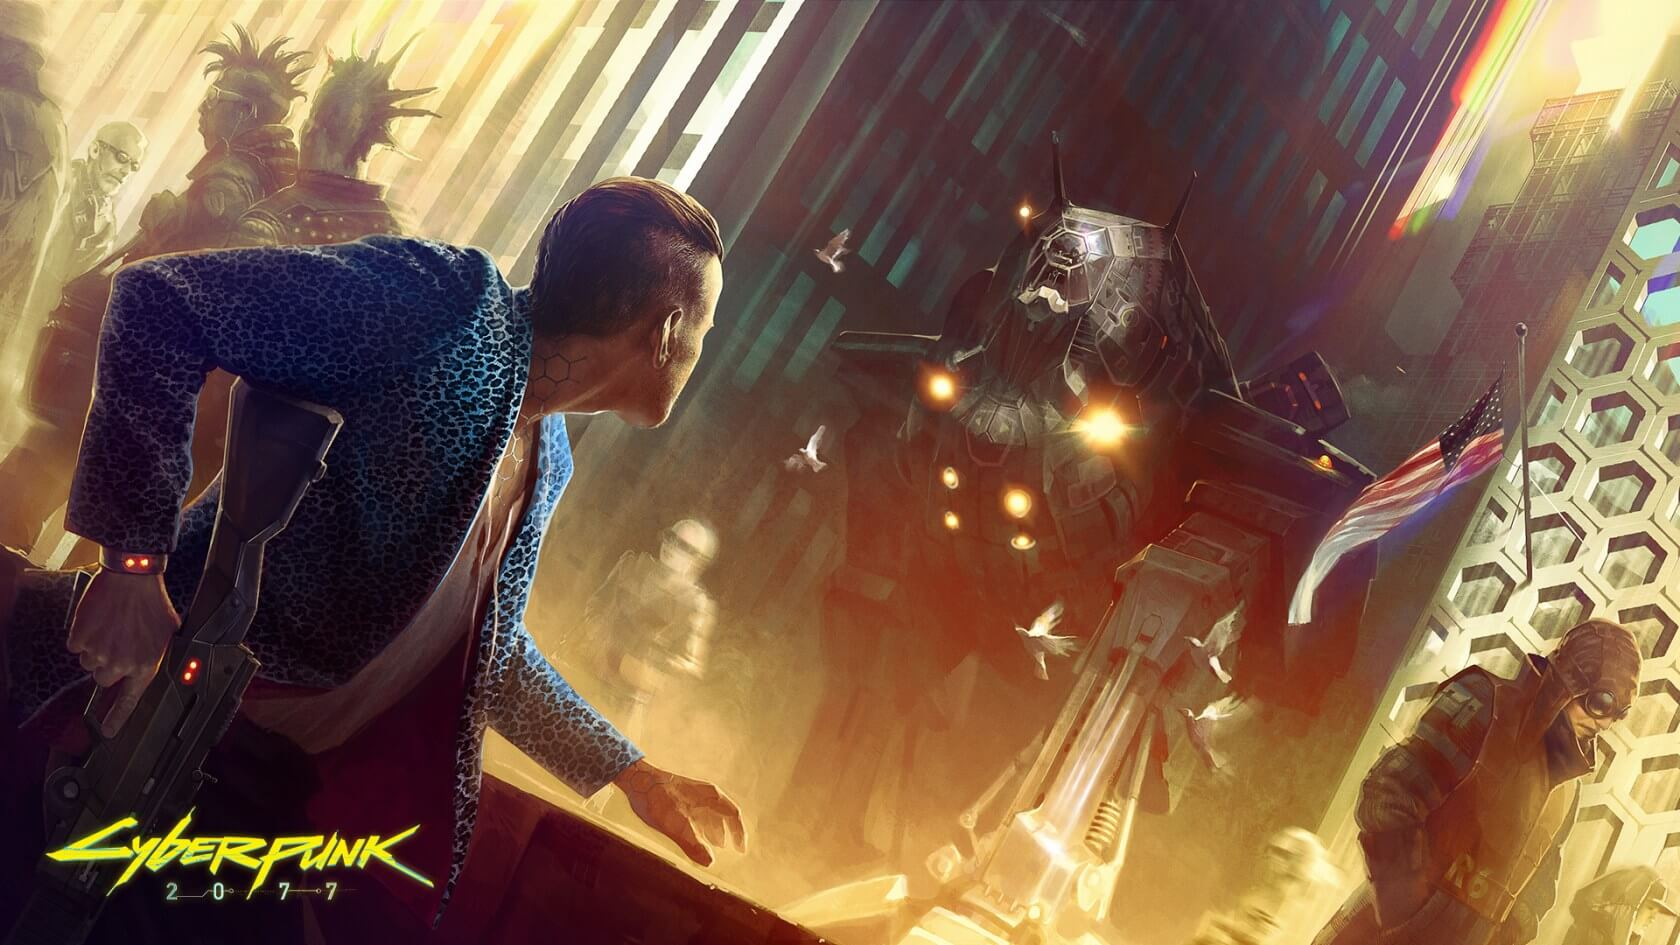 CD Projekt RED will almost certainly show Cyberpunk 2077 at E3